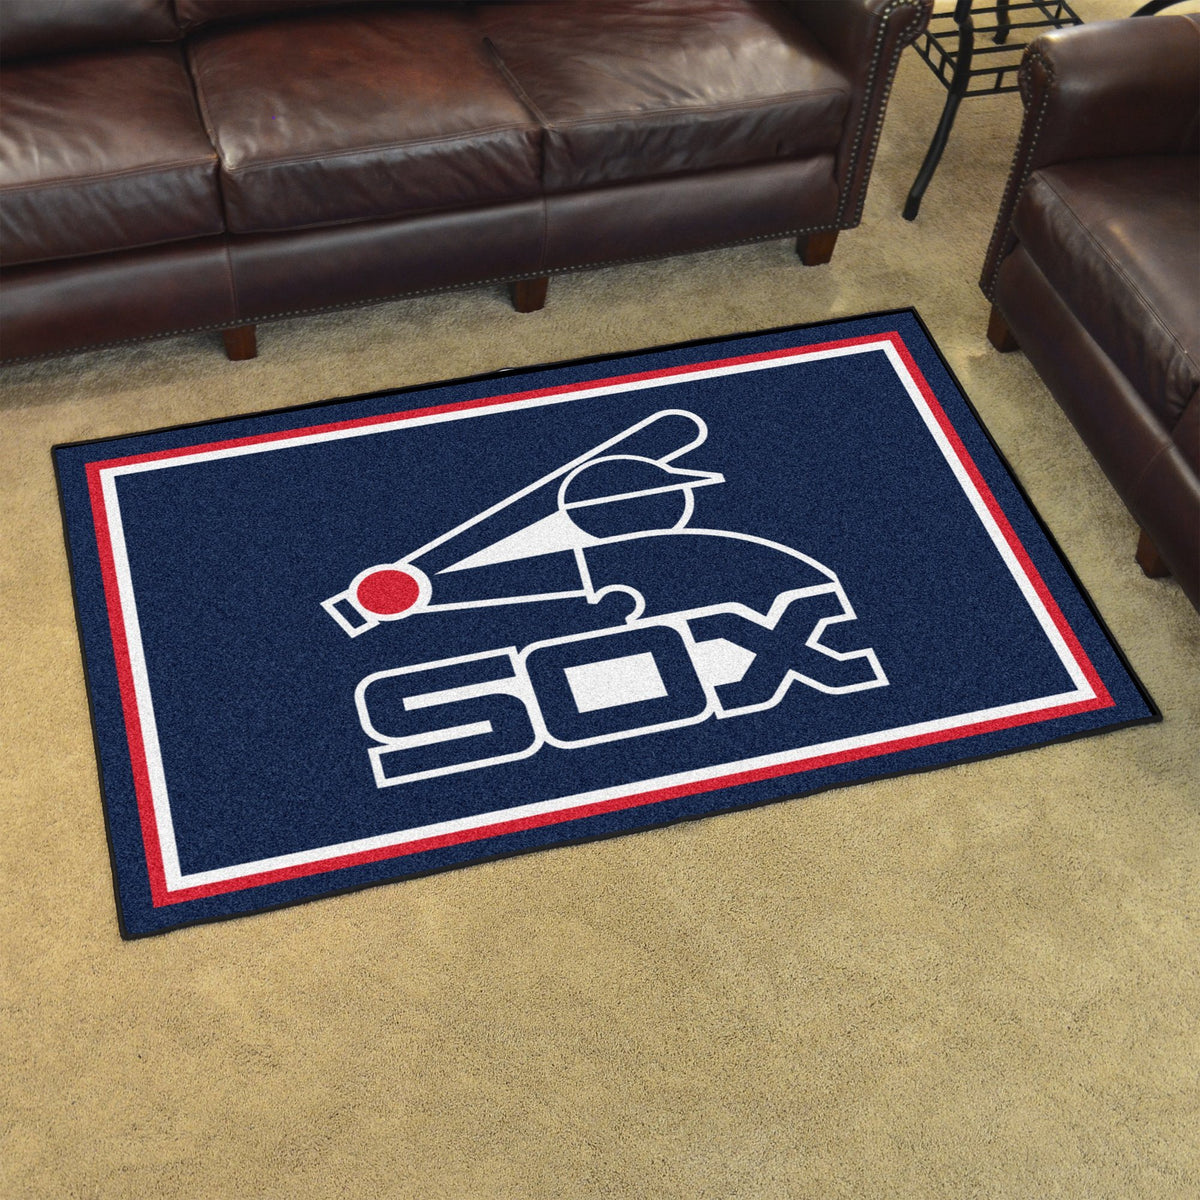 MLB Retro - 4' x 6' Rug MLB Retro Mats, Plush Rugs, 4x6 Rug, MLB, Home Fan Mats Chicago White Sox 2